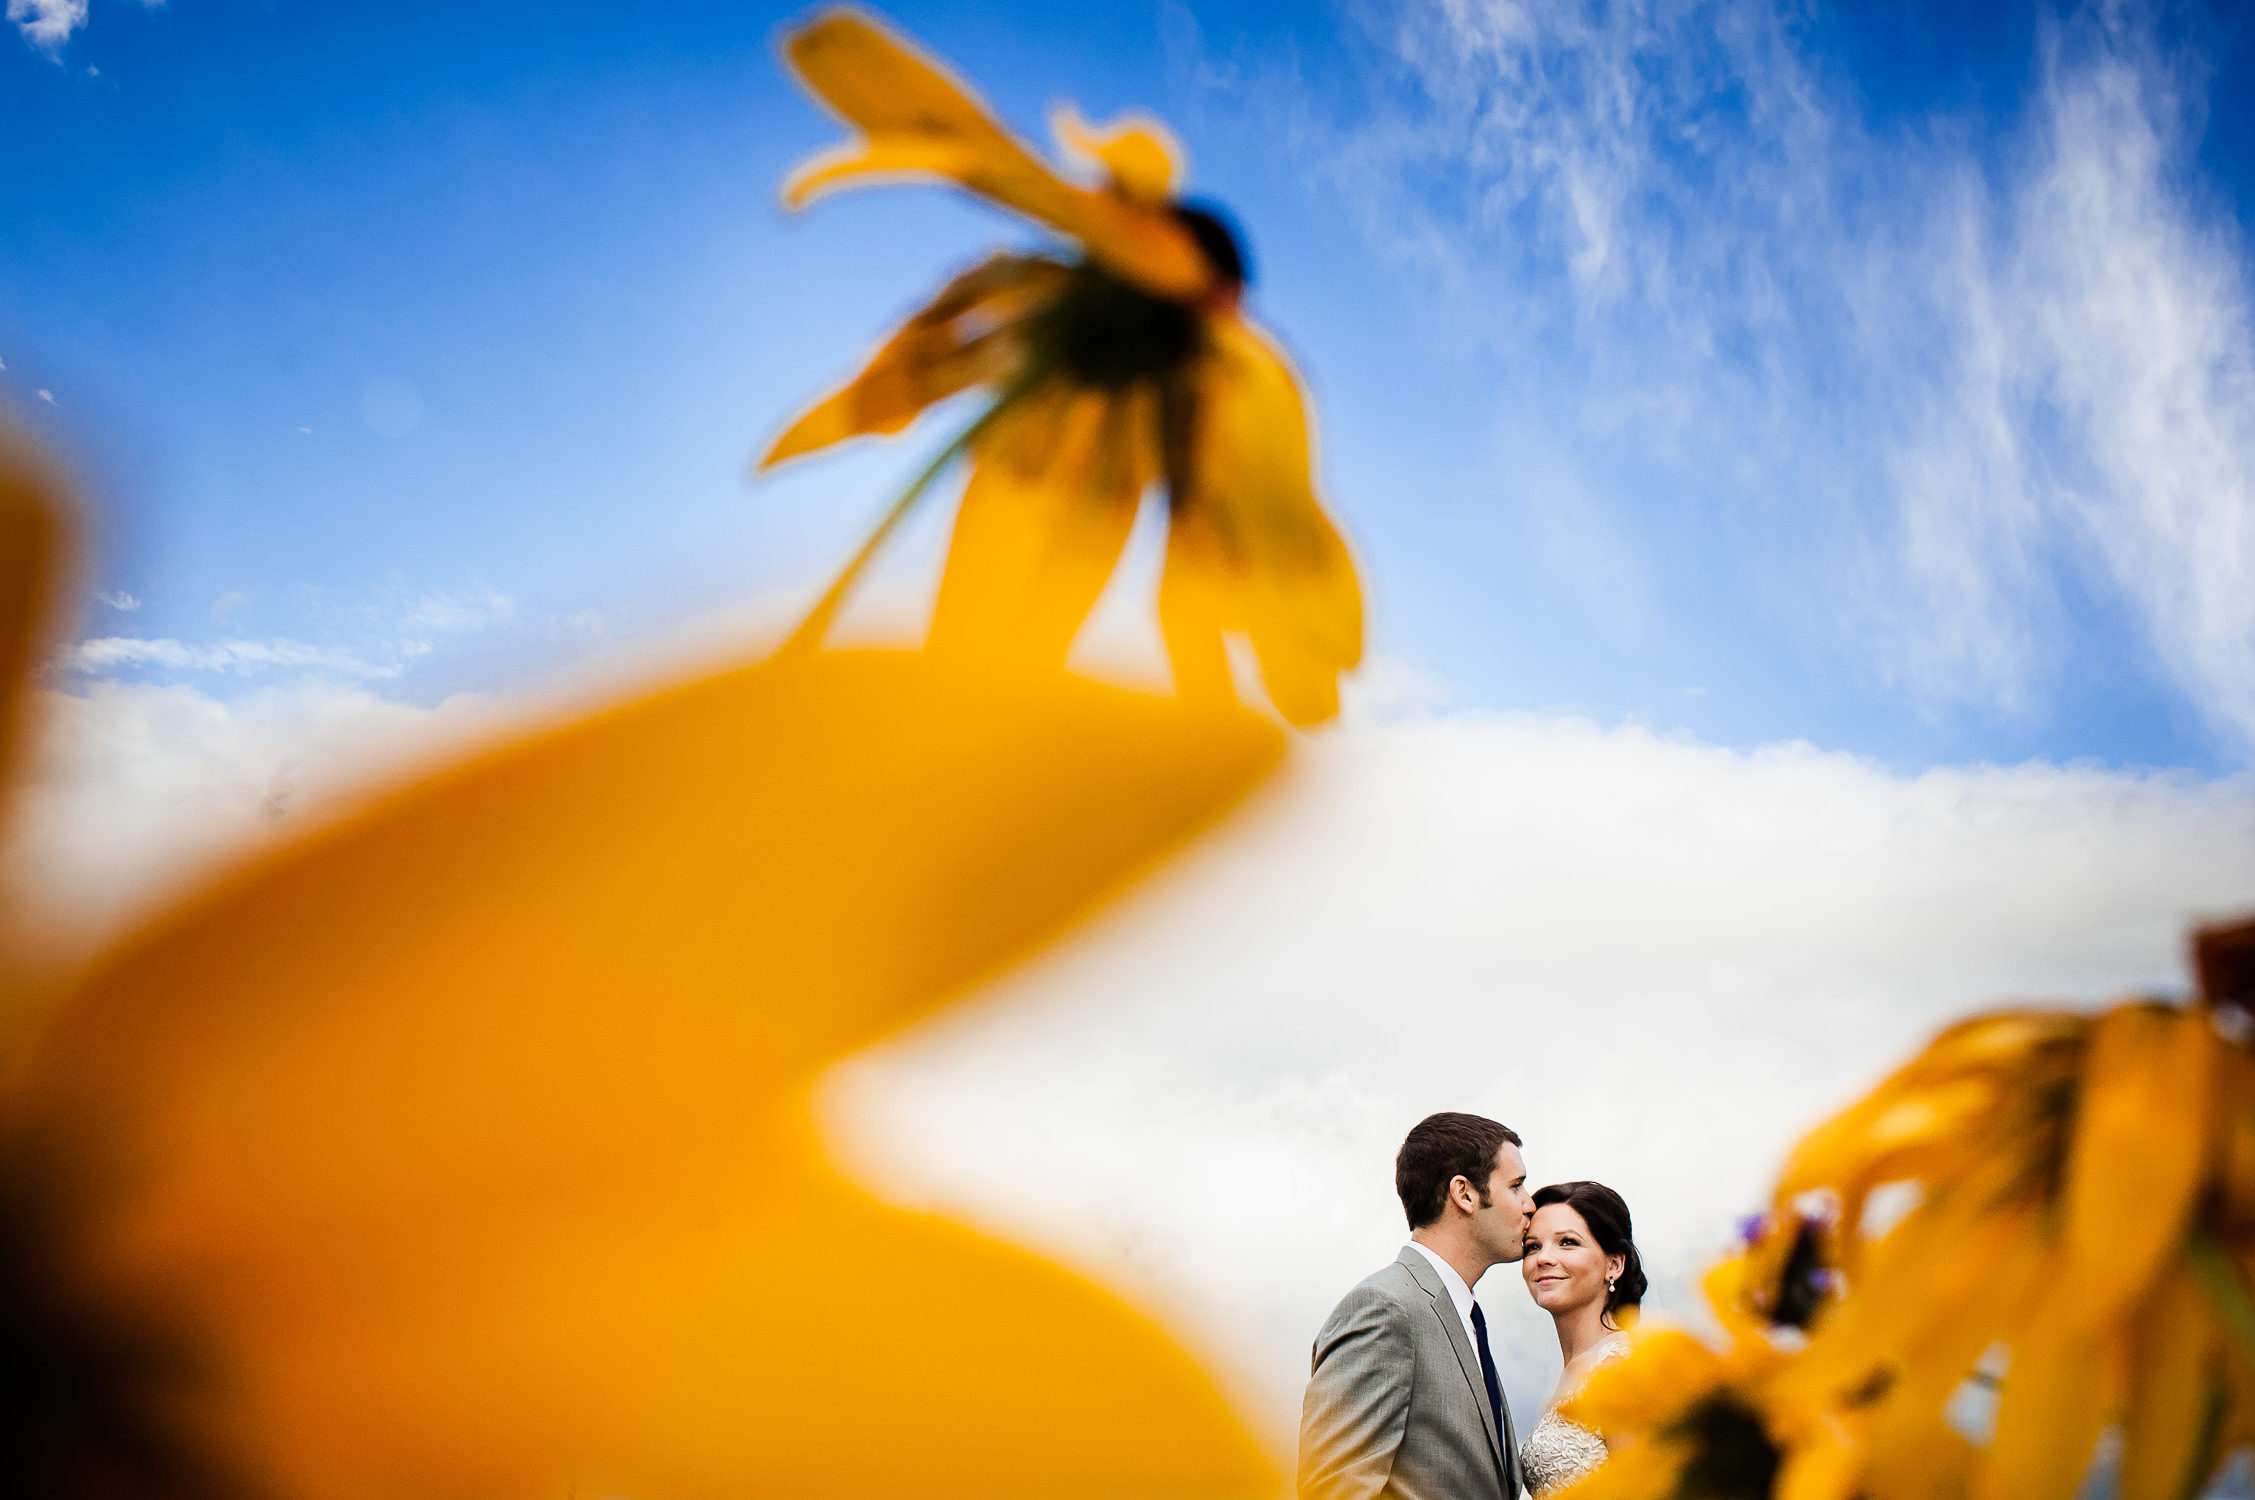 Stowe wedding;Trapp Family Lodge Wedding;Vermont wedding photographers;daisy wedding photo